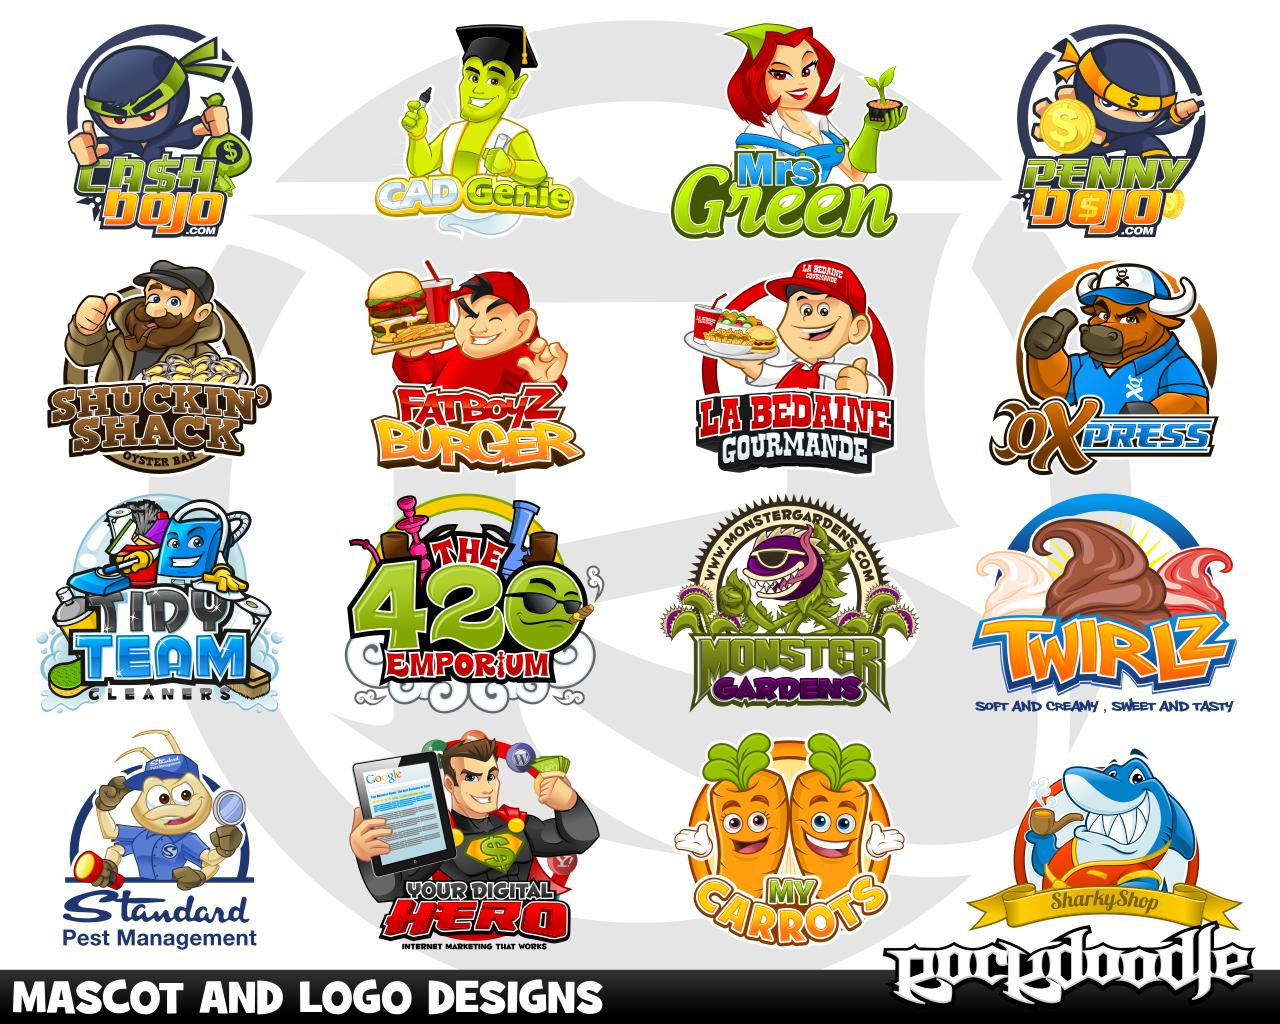 Character Design Logo : Mascot and logo designs by rockdoodle on envato studio